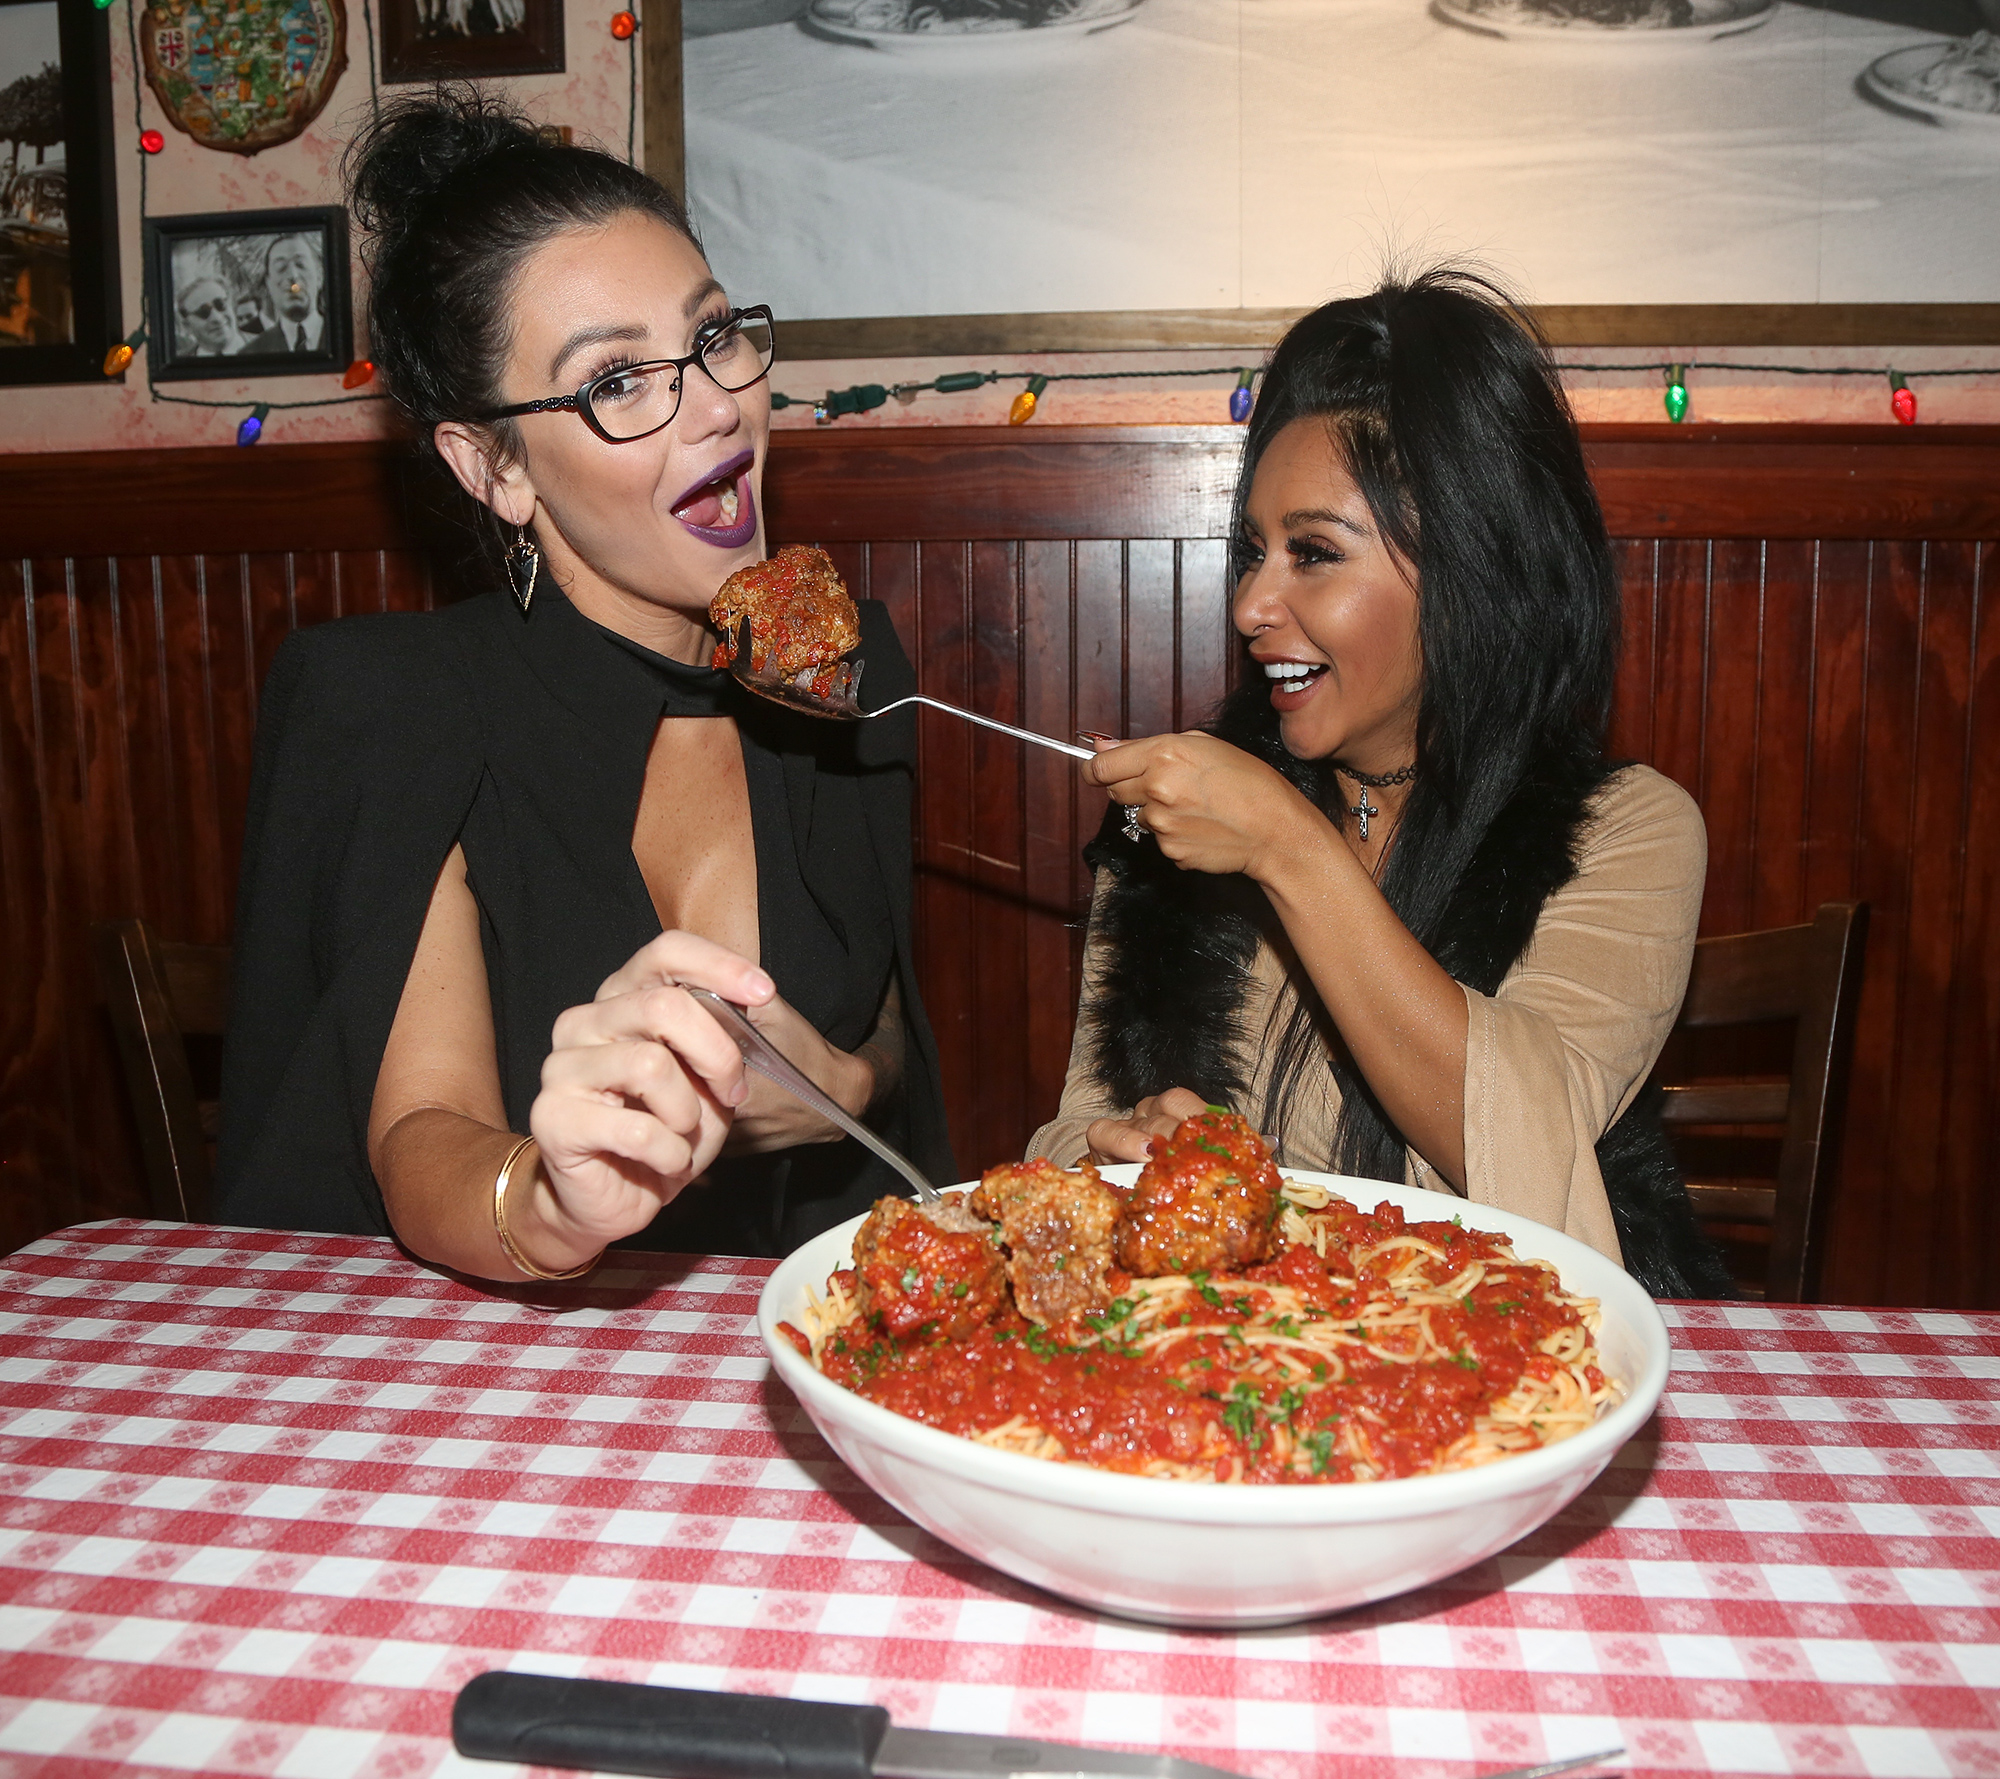 Snooki And JWow Visit Buca di Beppo Times Square